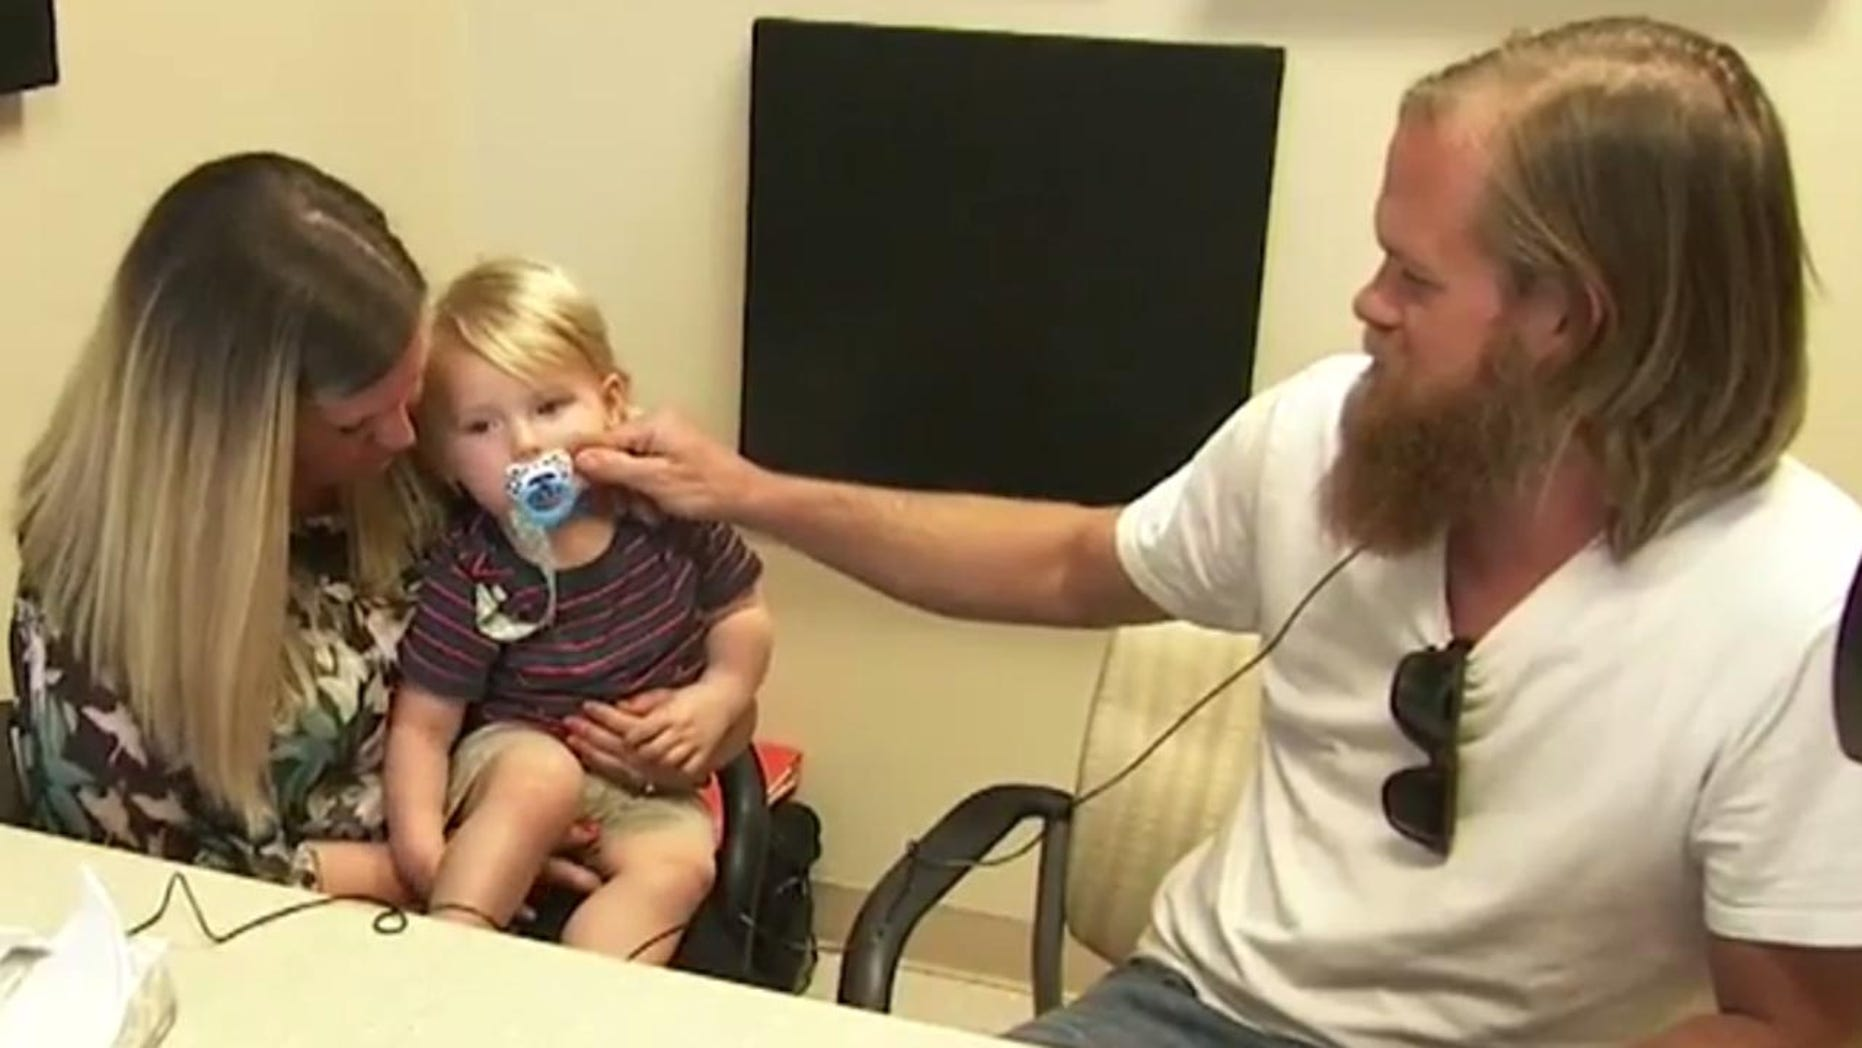 Randy and Max were both underwent cochlear implant surgery.